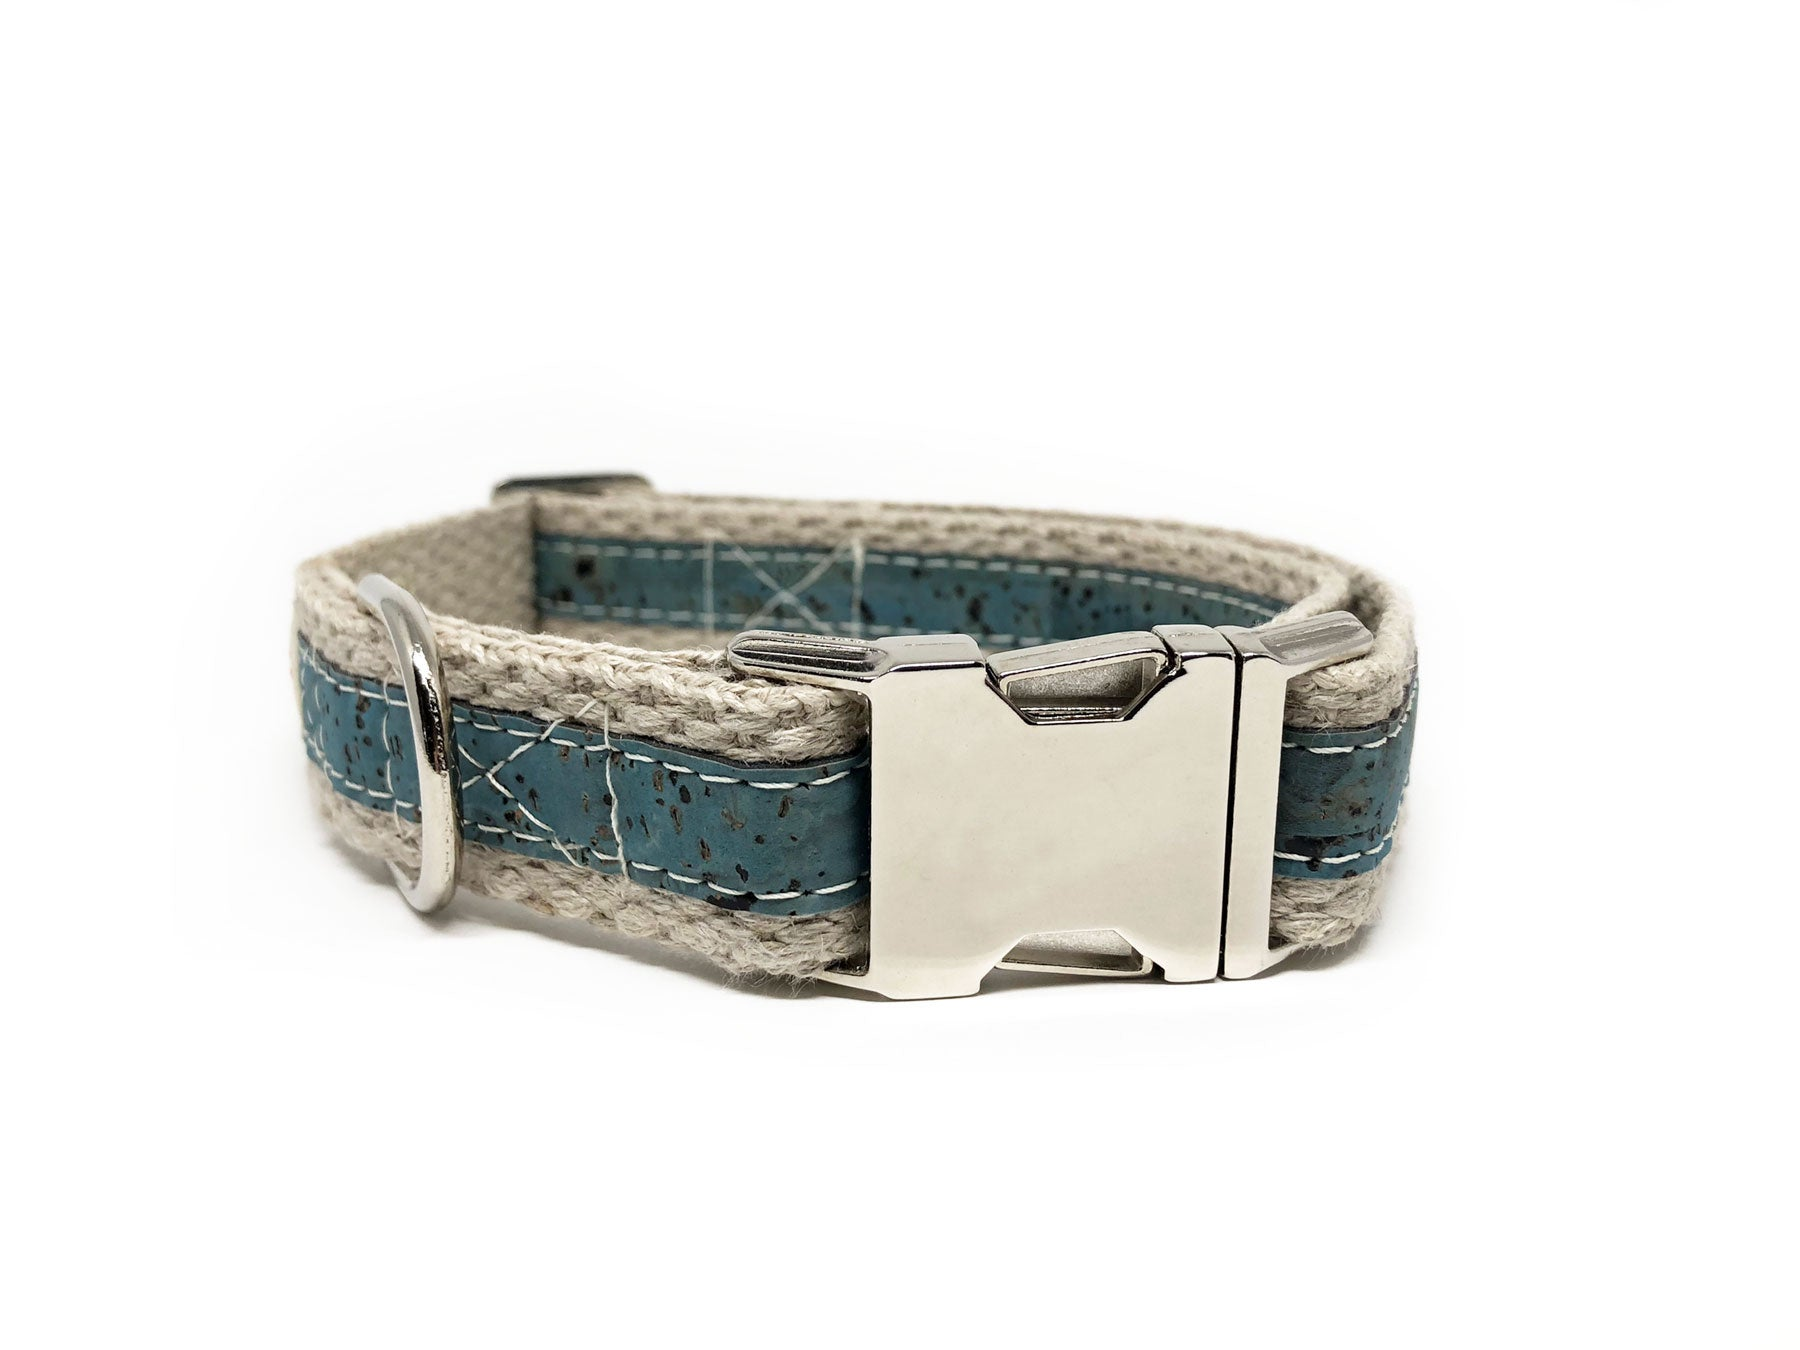 Adventurer Ocean Blue Cork Leather Large Dog Collar, Hemp Webbing